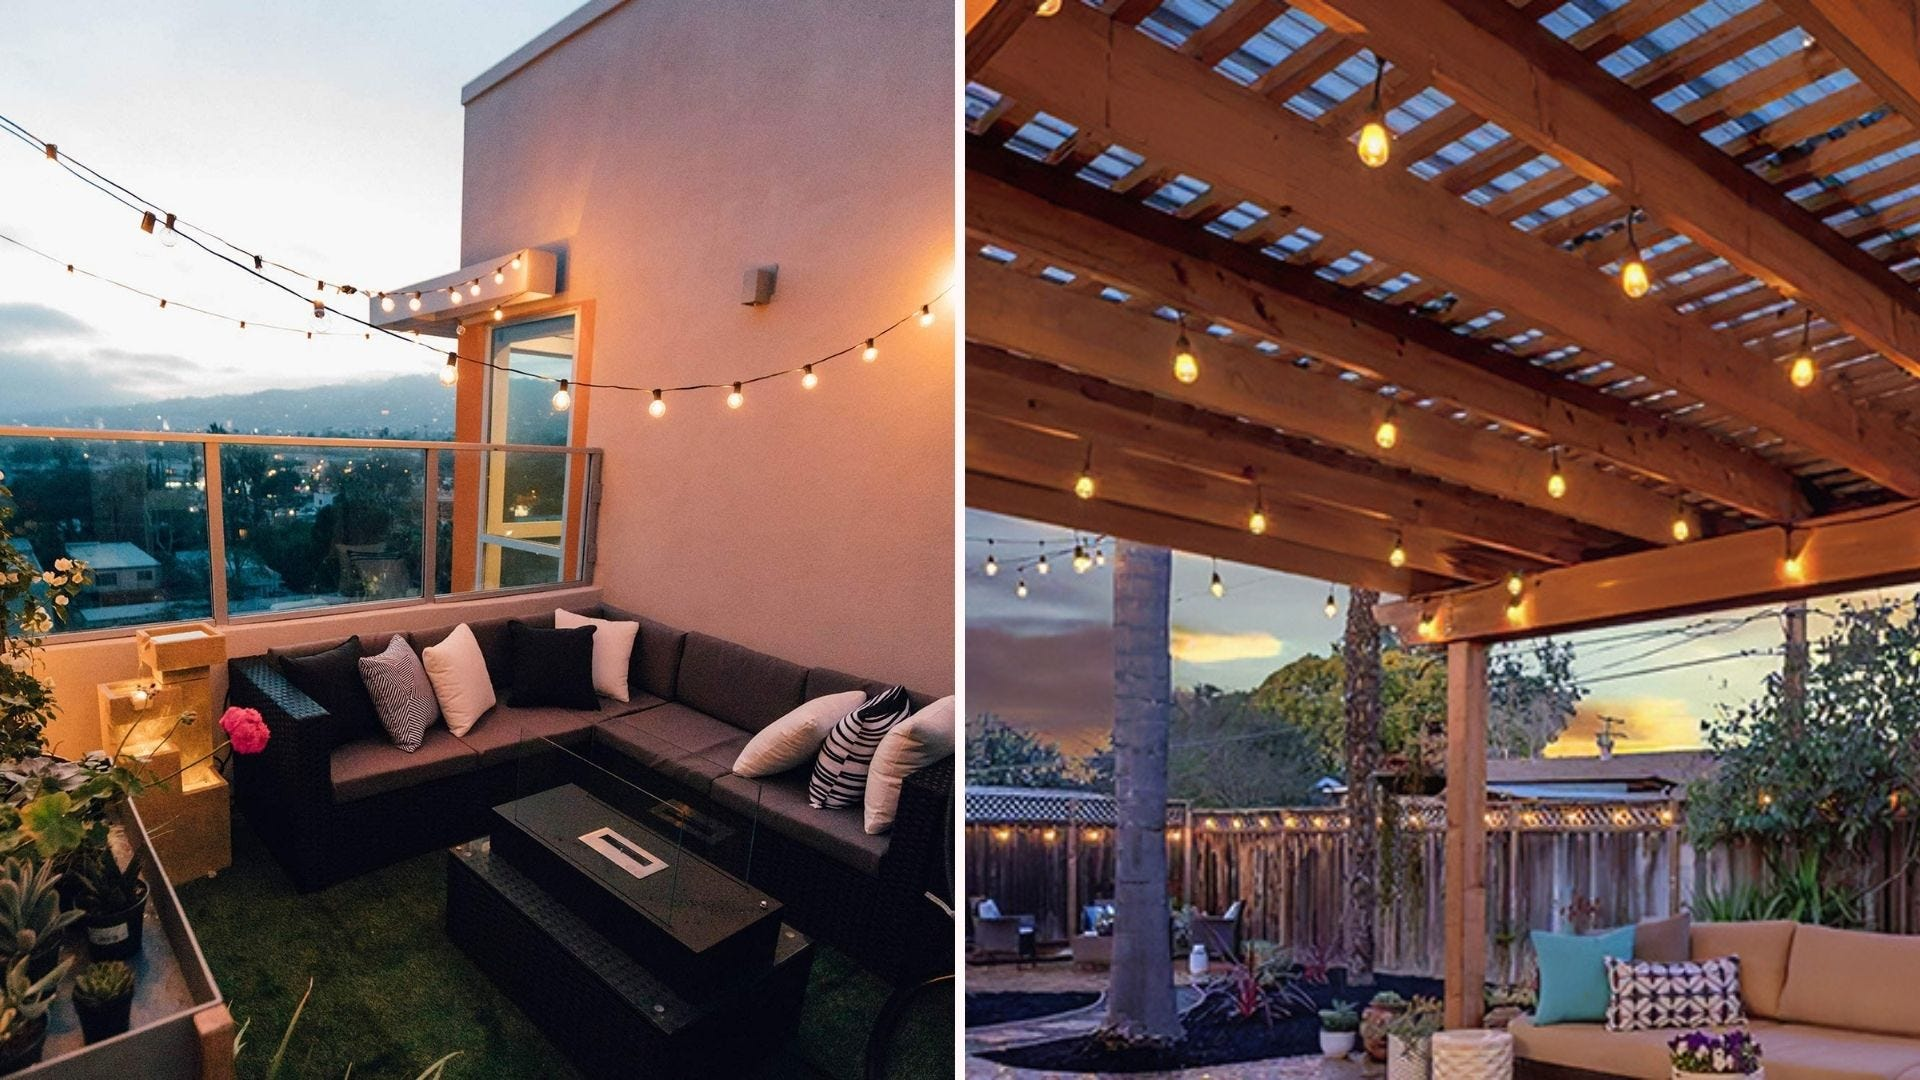 Two patio spaces with string lights hanging from above